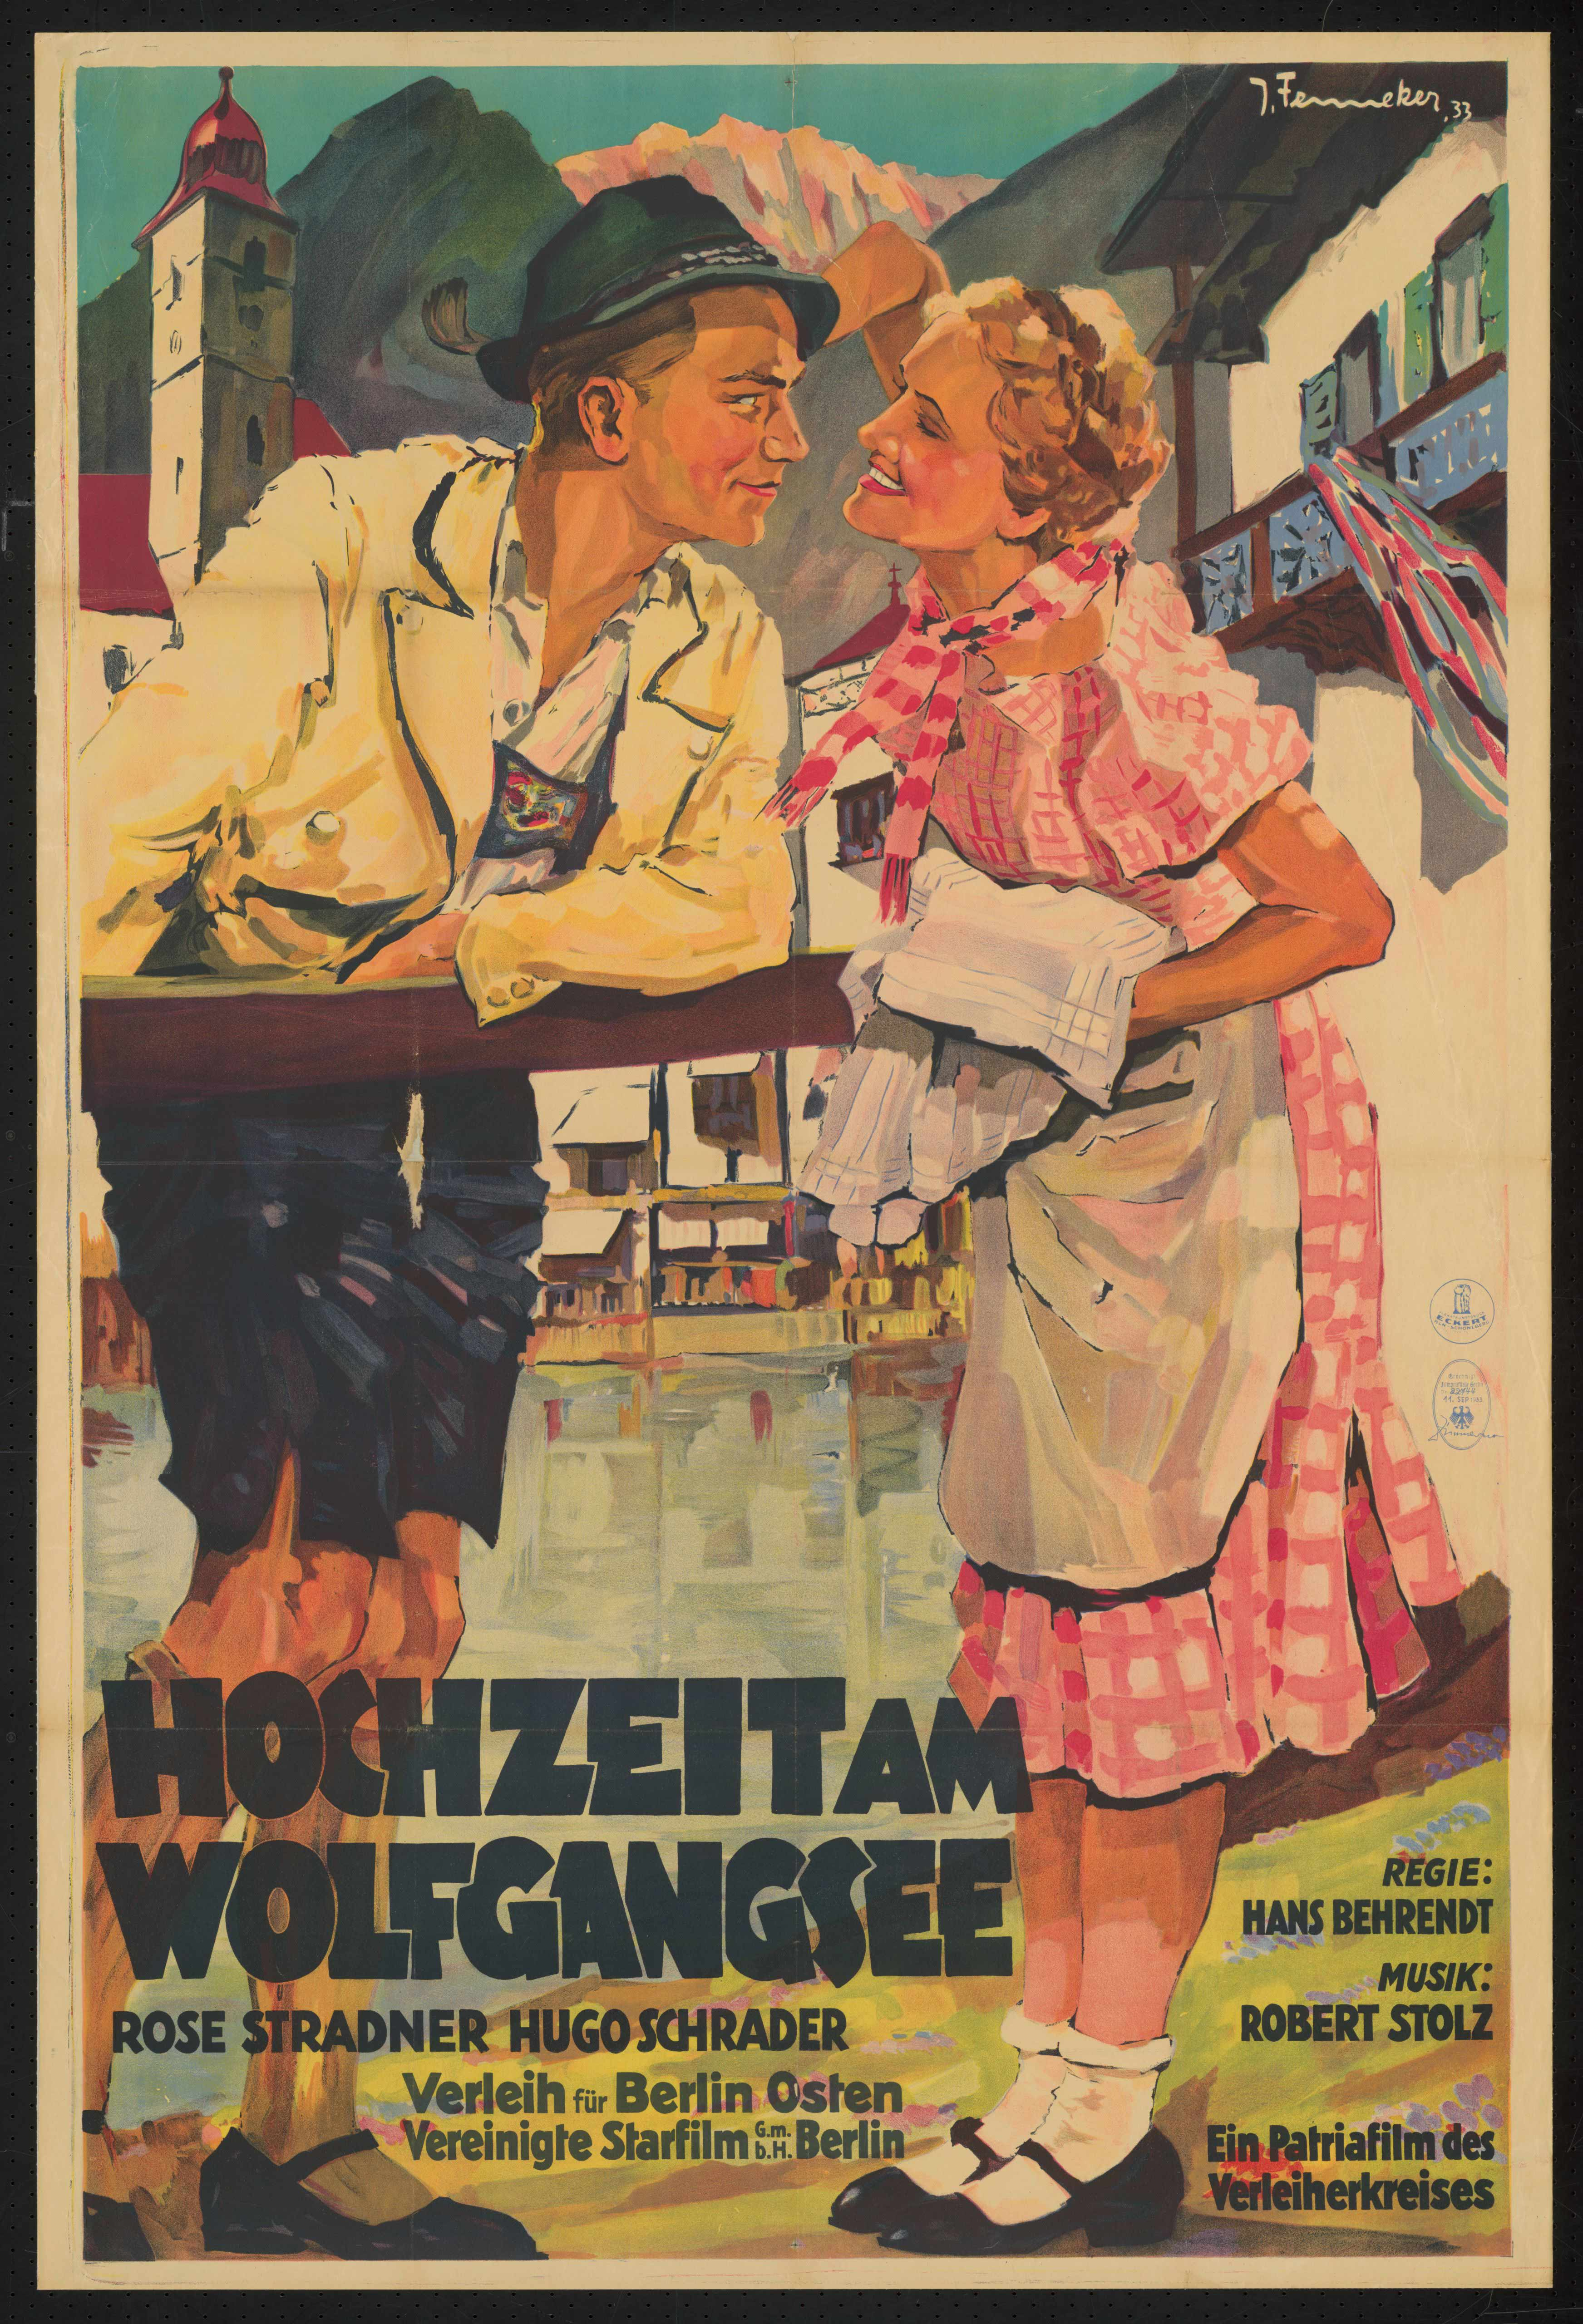 Film poster by Josef Fenneker: Hochzeit am Wolfgangsee, Germany 1933, directed by Hans Behrendt